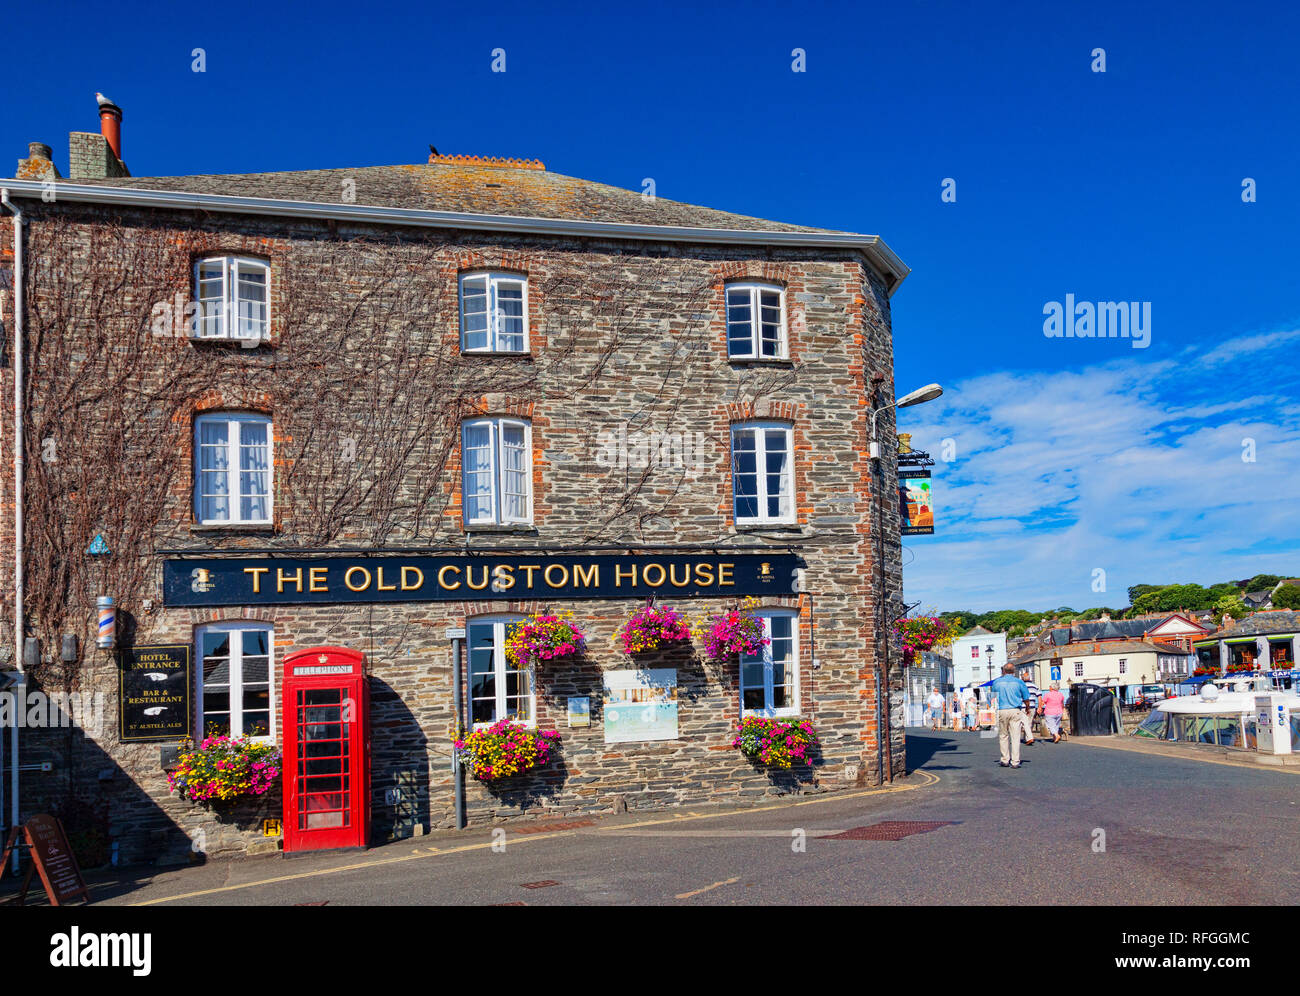 26 June 2018: Padstow, Cornwall, UK - The Old Custom House hotel in Padstow, Cornwall, UK - Stock Image